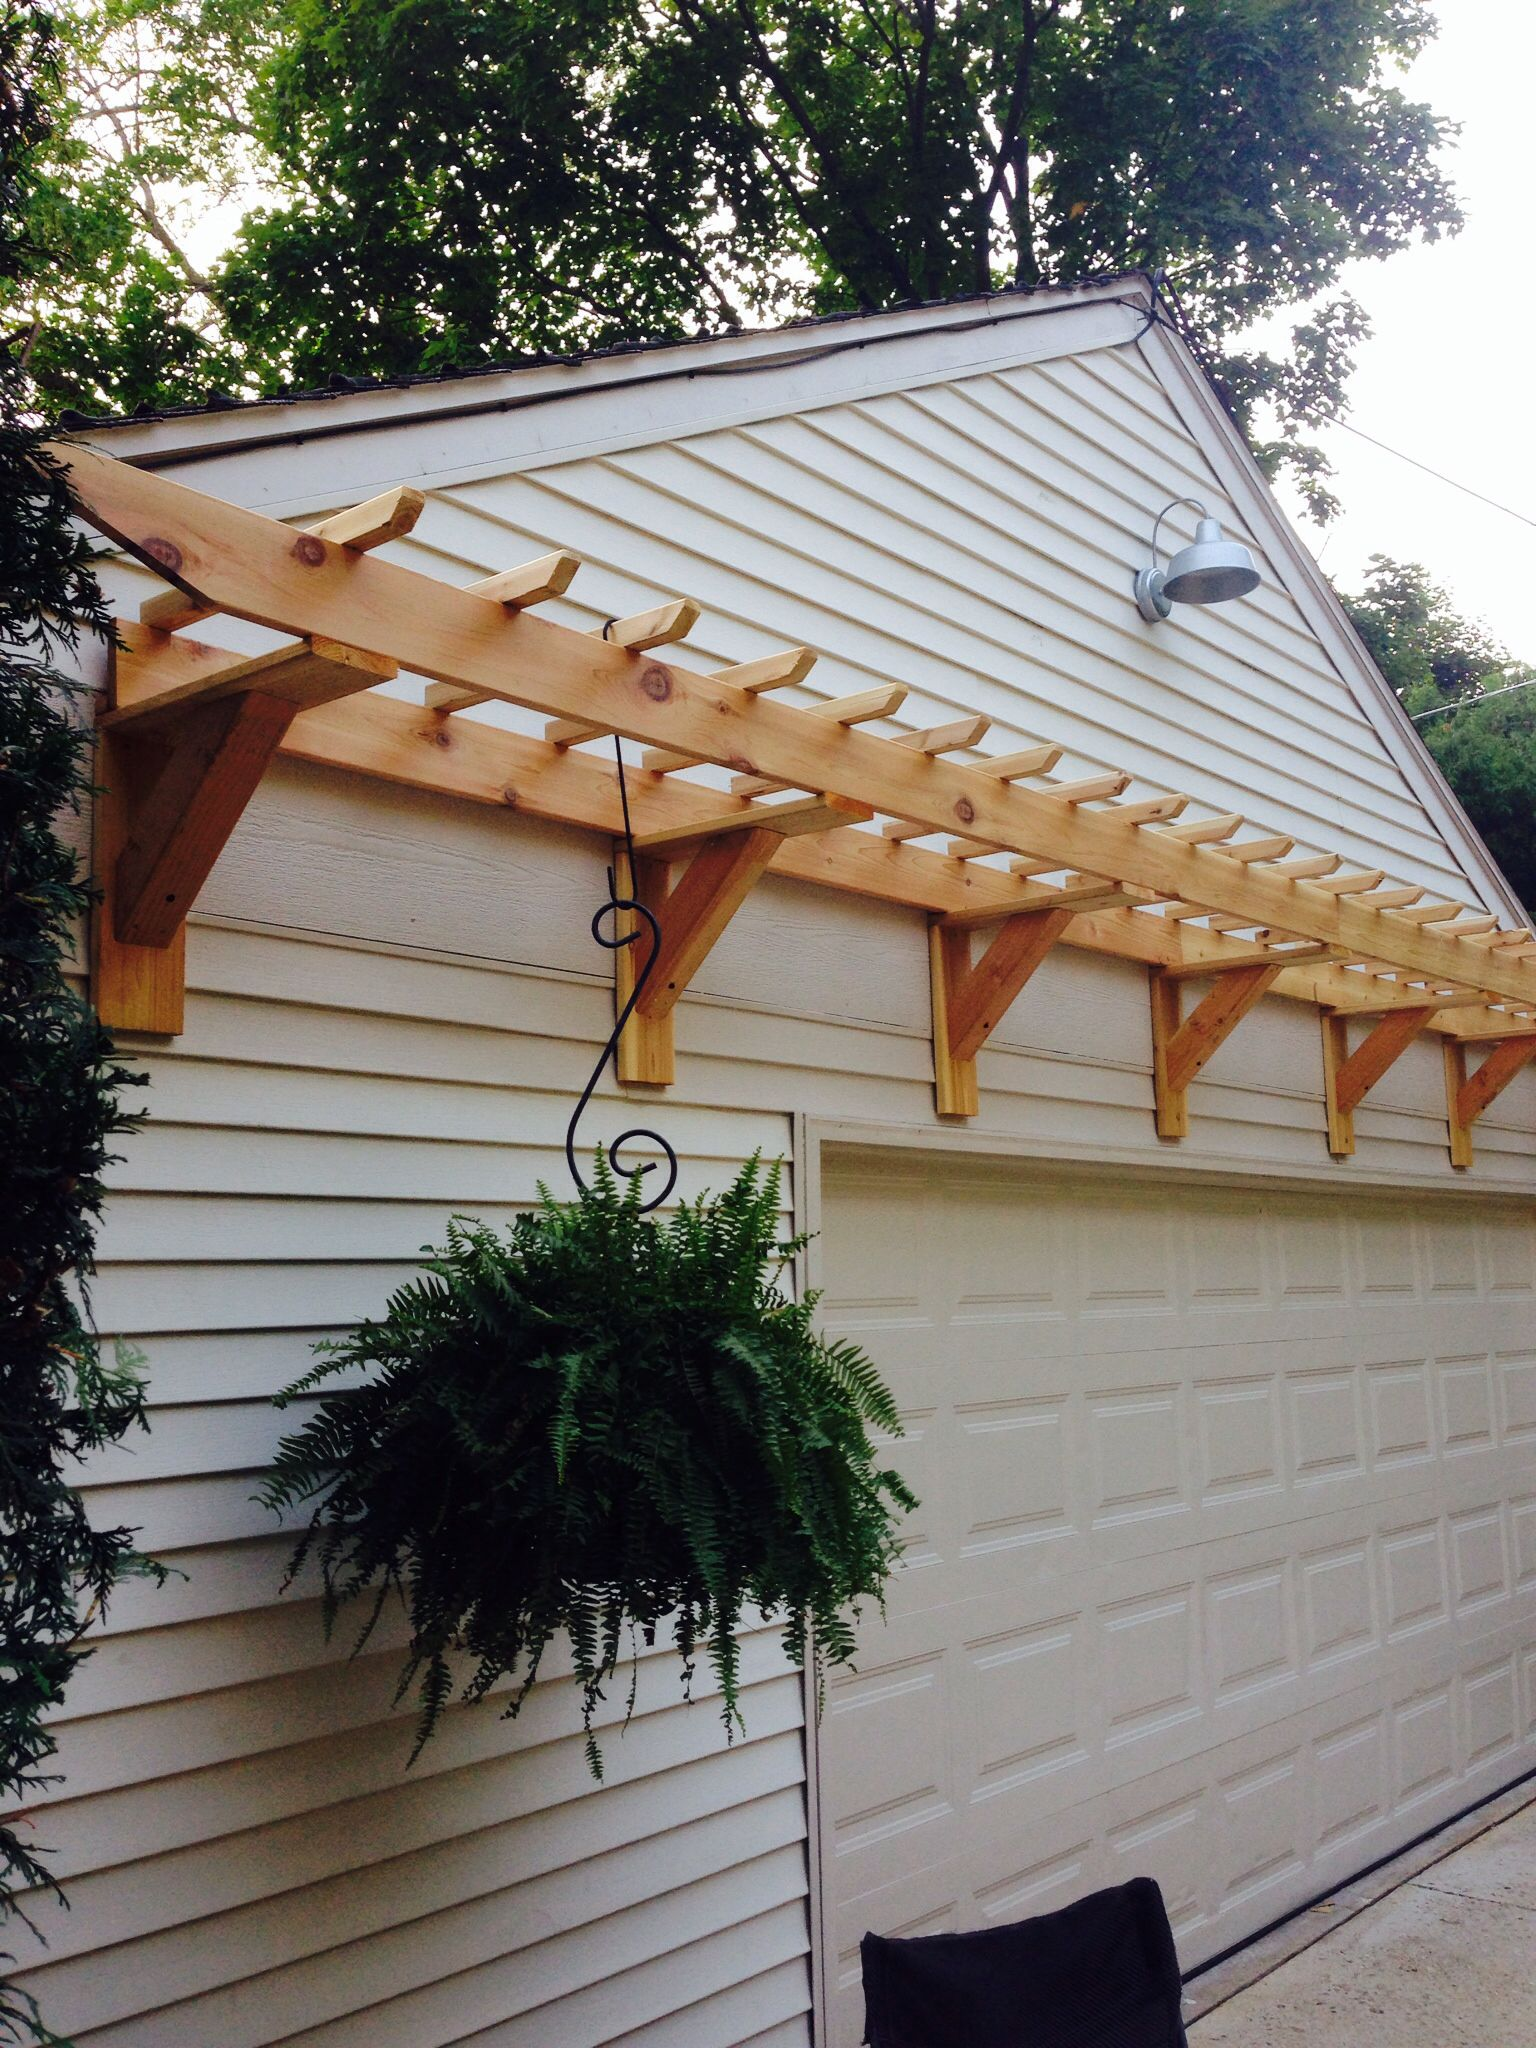 Garage door trellis or arbor project Made with cedar decking and